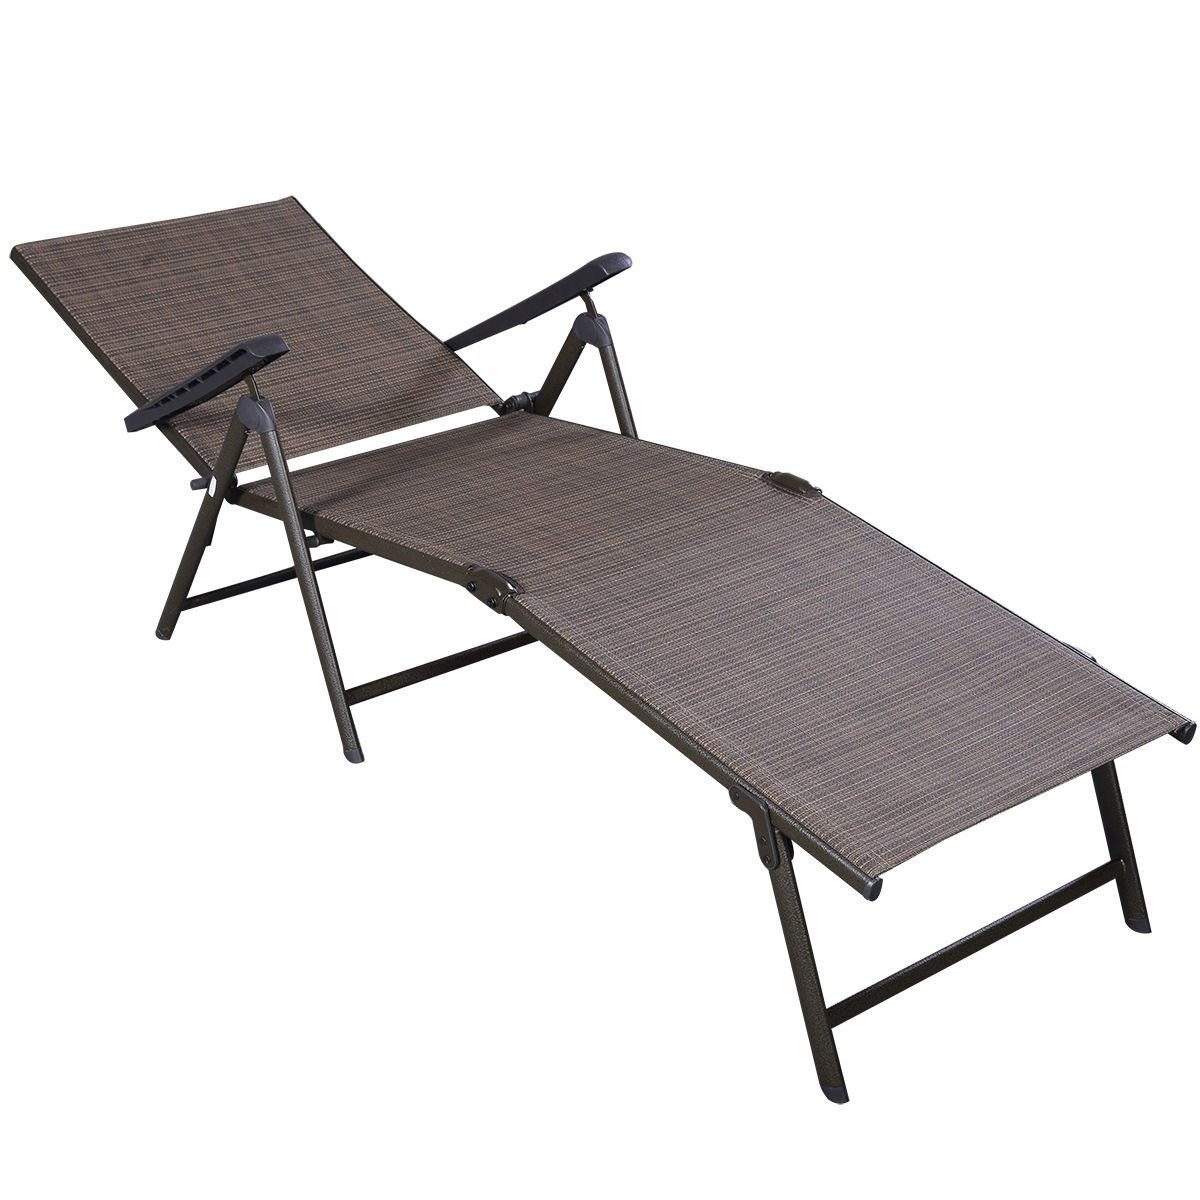 Outdoor Chaise Lounge Chairs Under $100 Throughout Preferred Lounge Chair : Outdoor Setting Sale Cheap Lounge Chairs Pool (View 8 of 15)